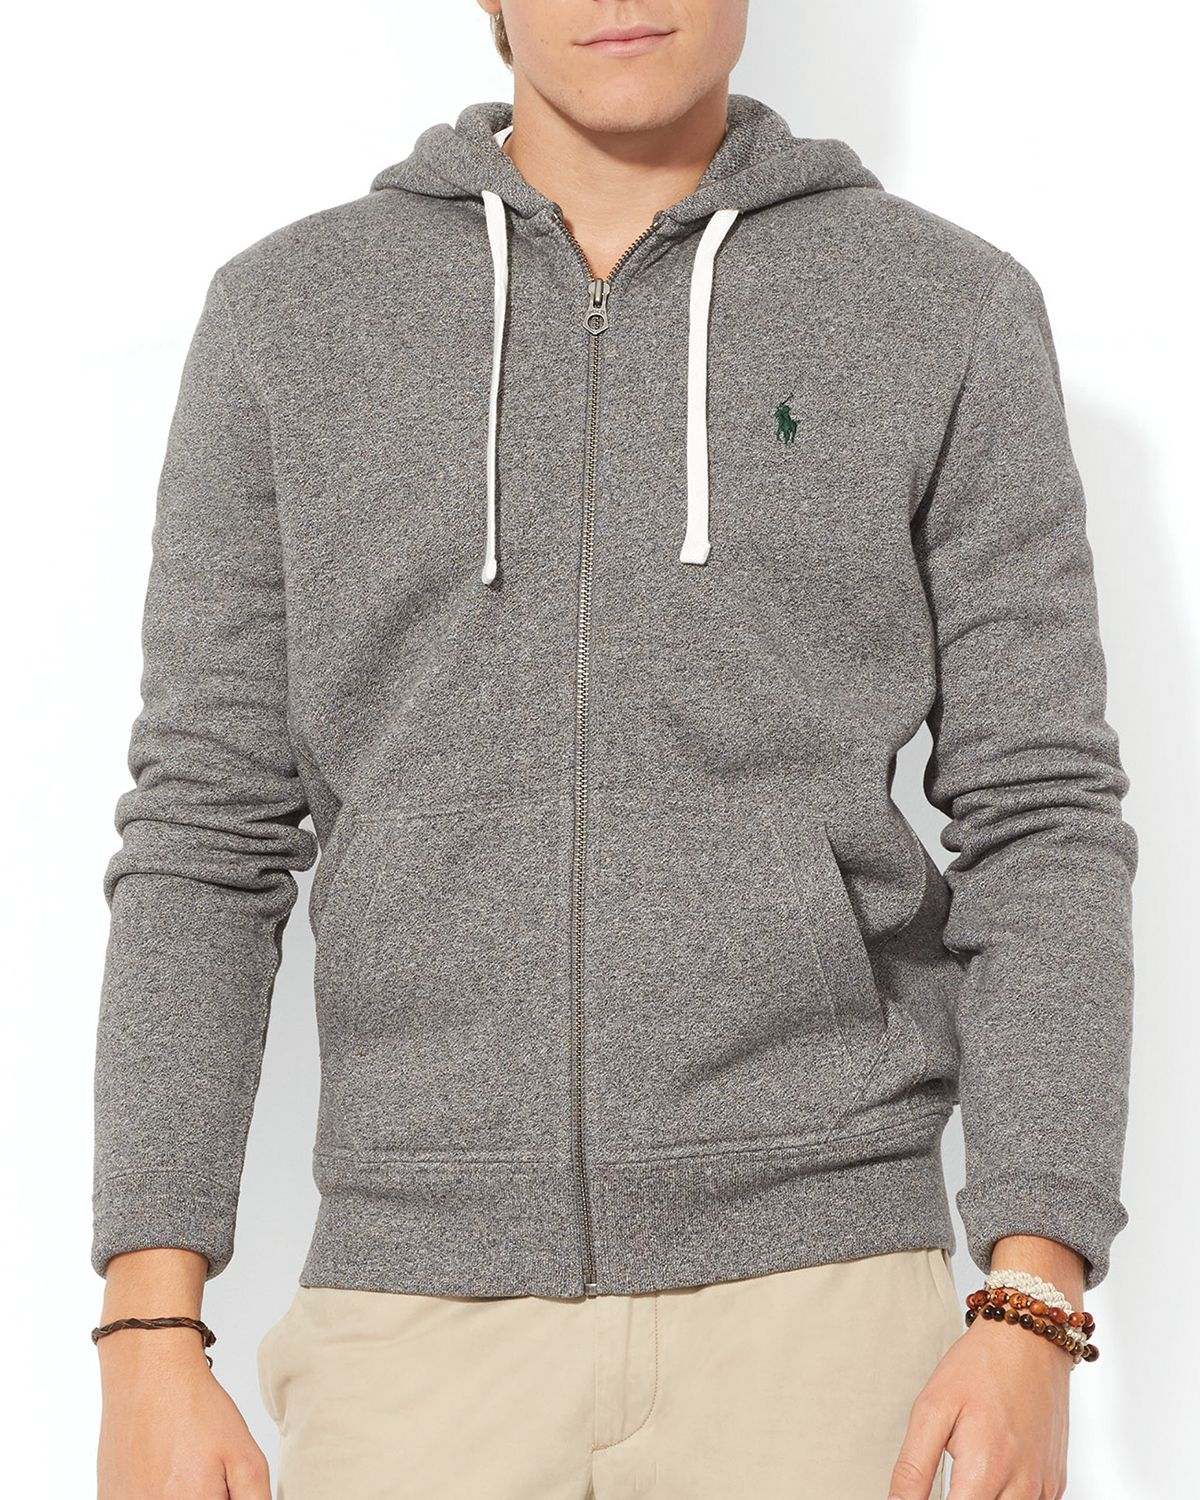 lyst ralph lauren polo classic fleece full zip hoodie in gray for men. Black Bedroom Furniture Sets. Home Design Ideas